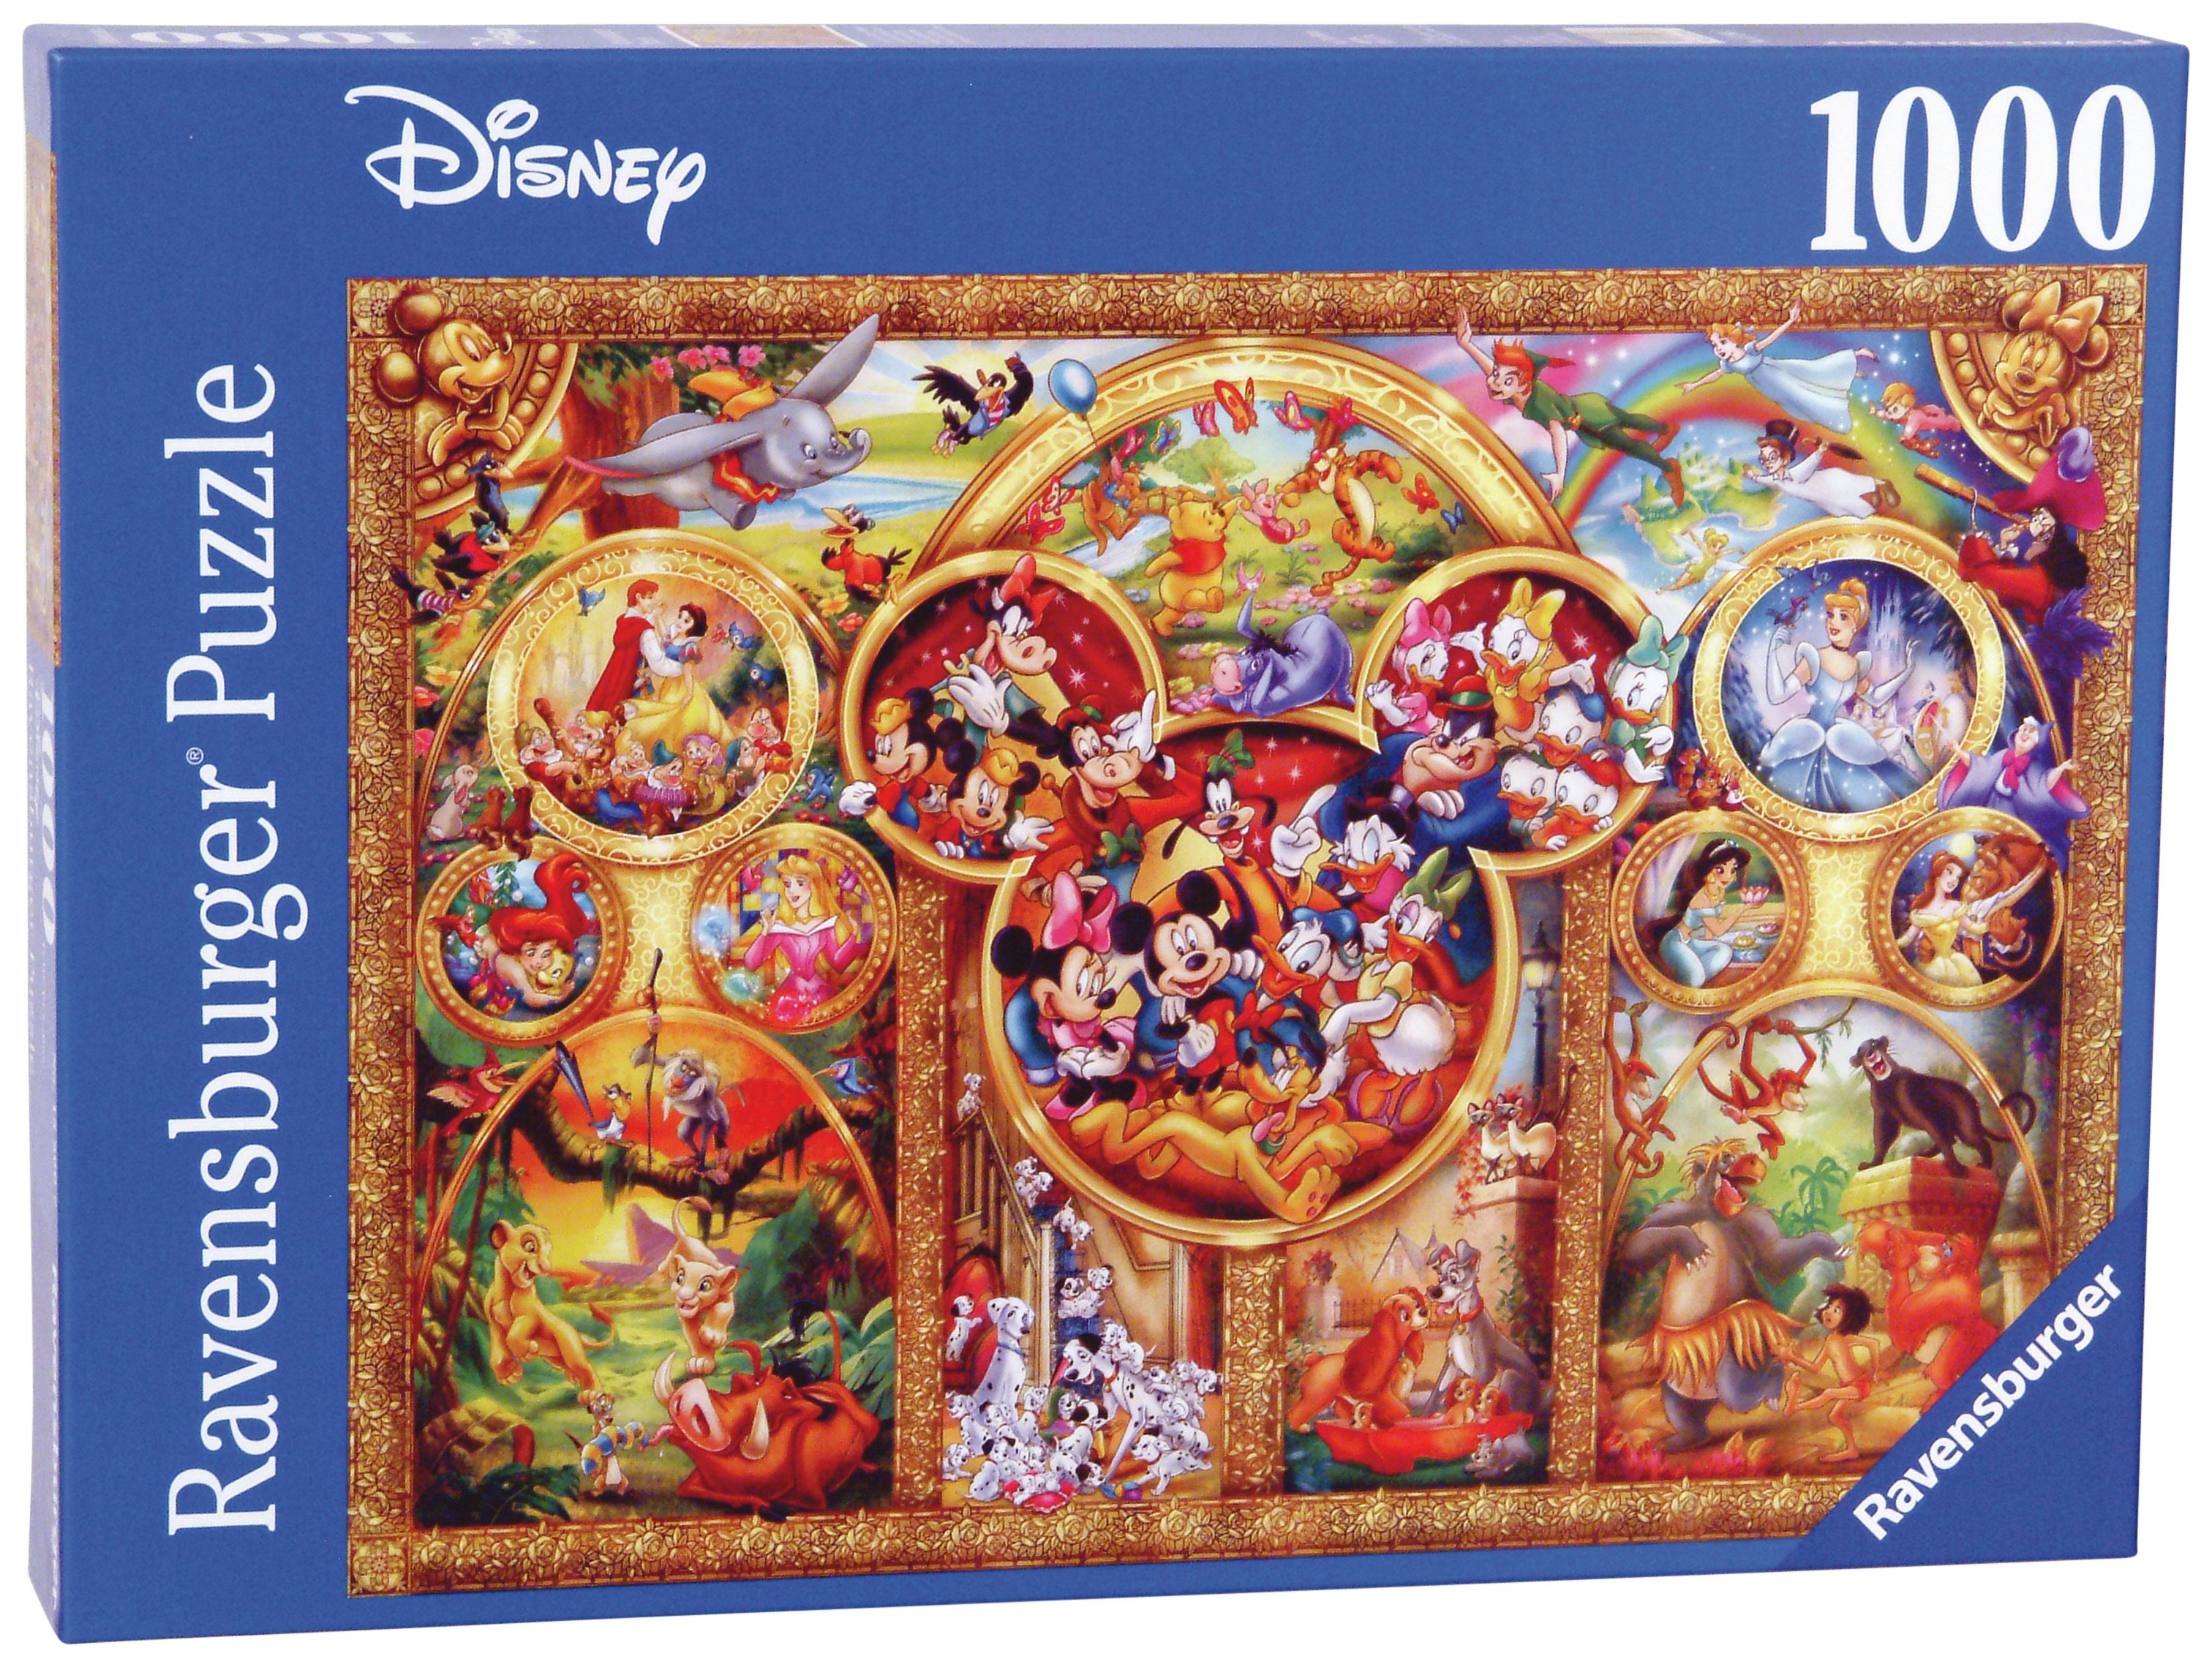 The Best of Disney Themes 1000 Piece Puzzle.